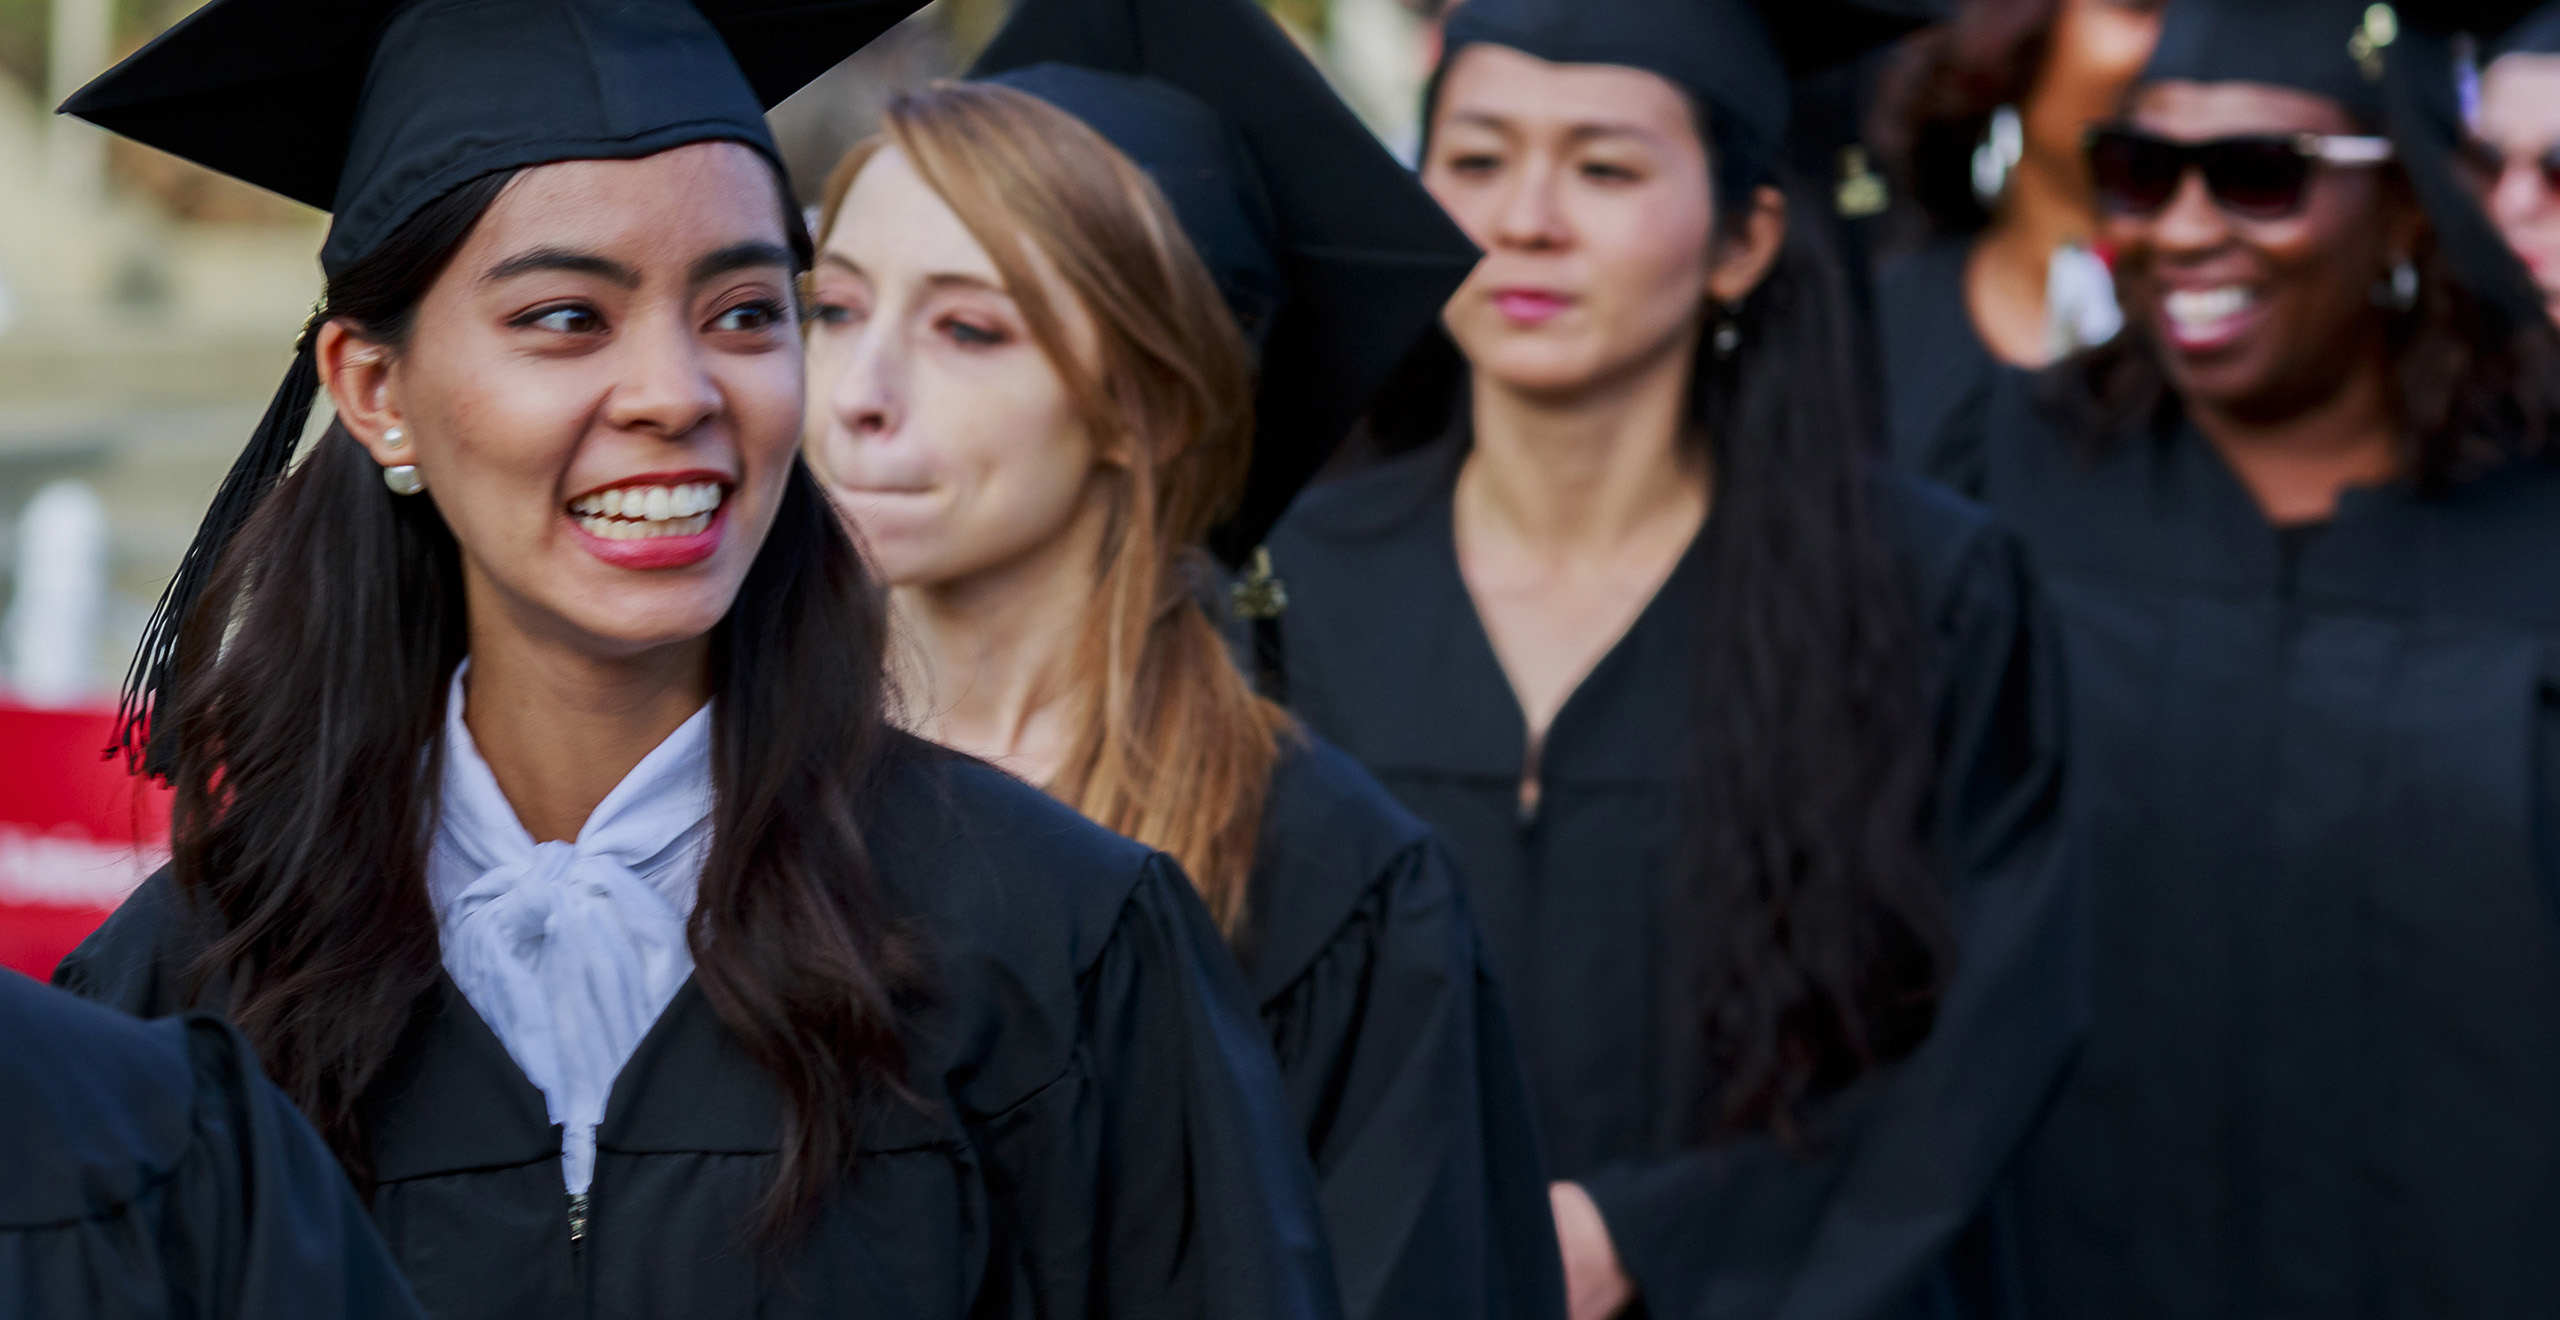 Holy Name University students walking in line for graduation